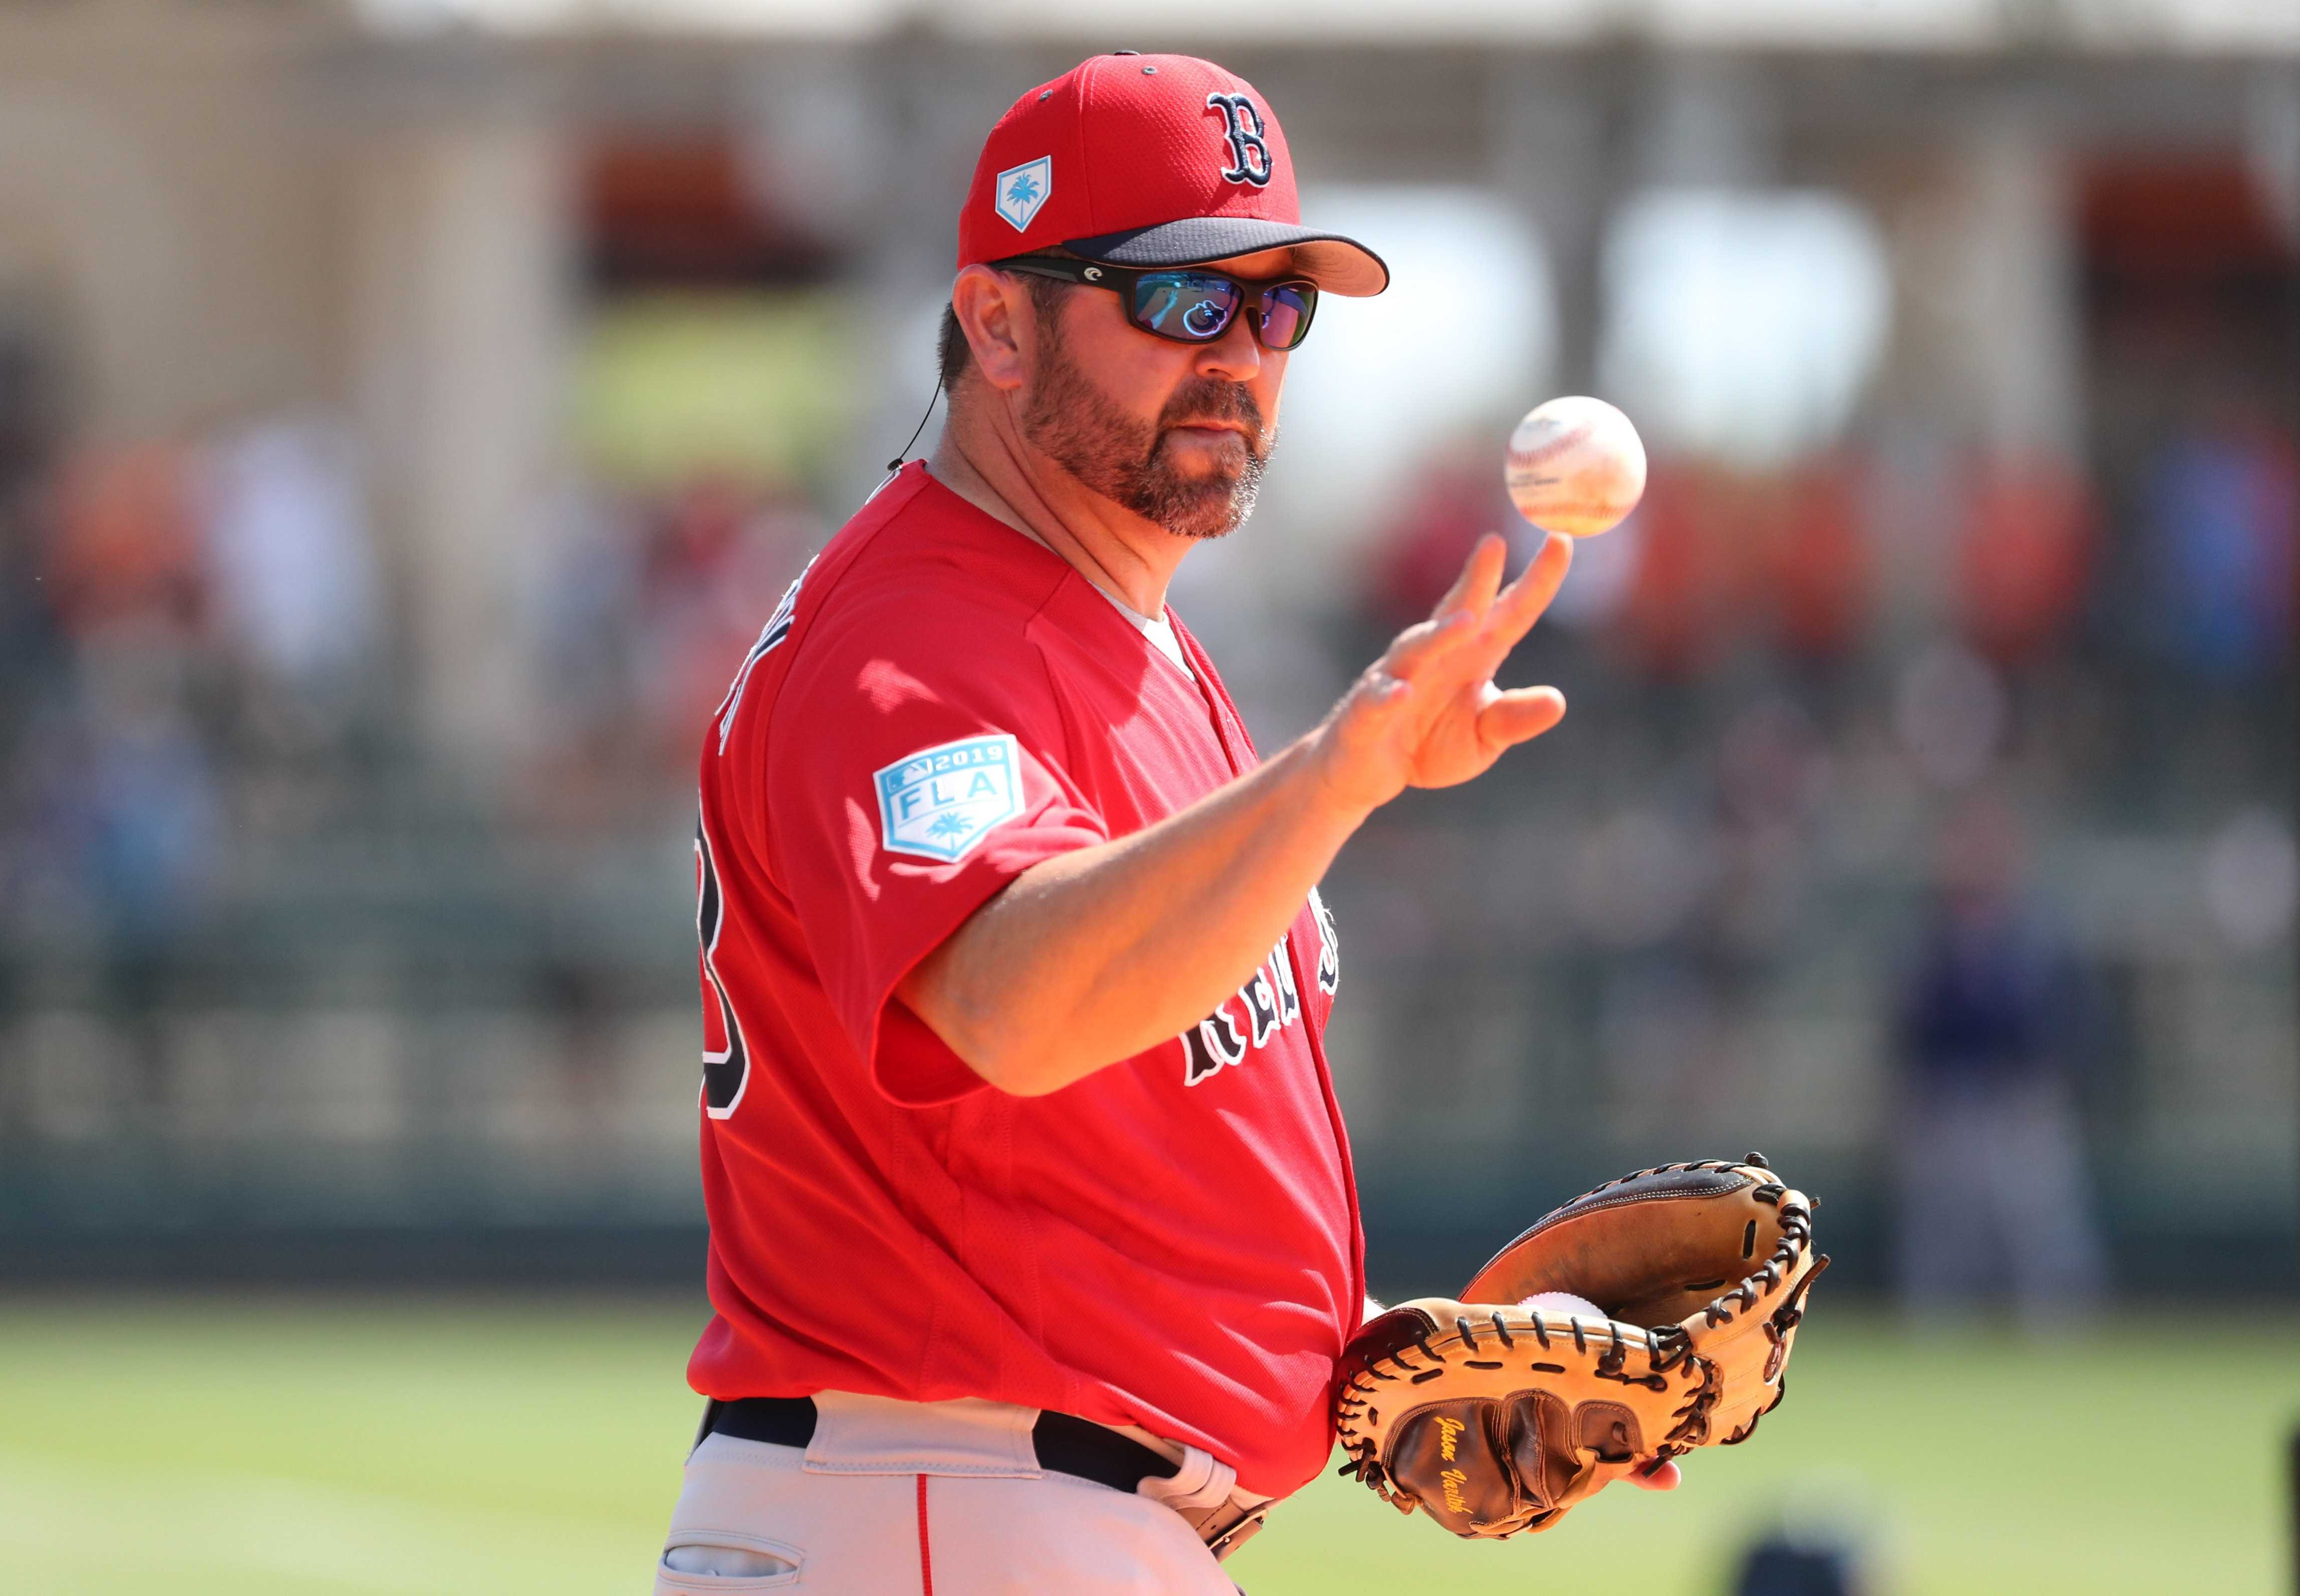 Jason Varitek, now a coach for the Red Sox could one day be manager.